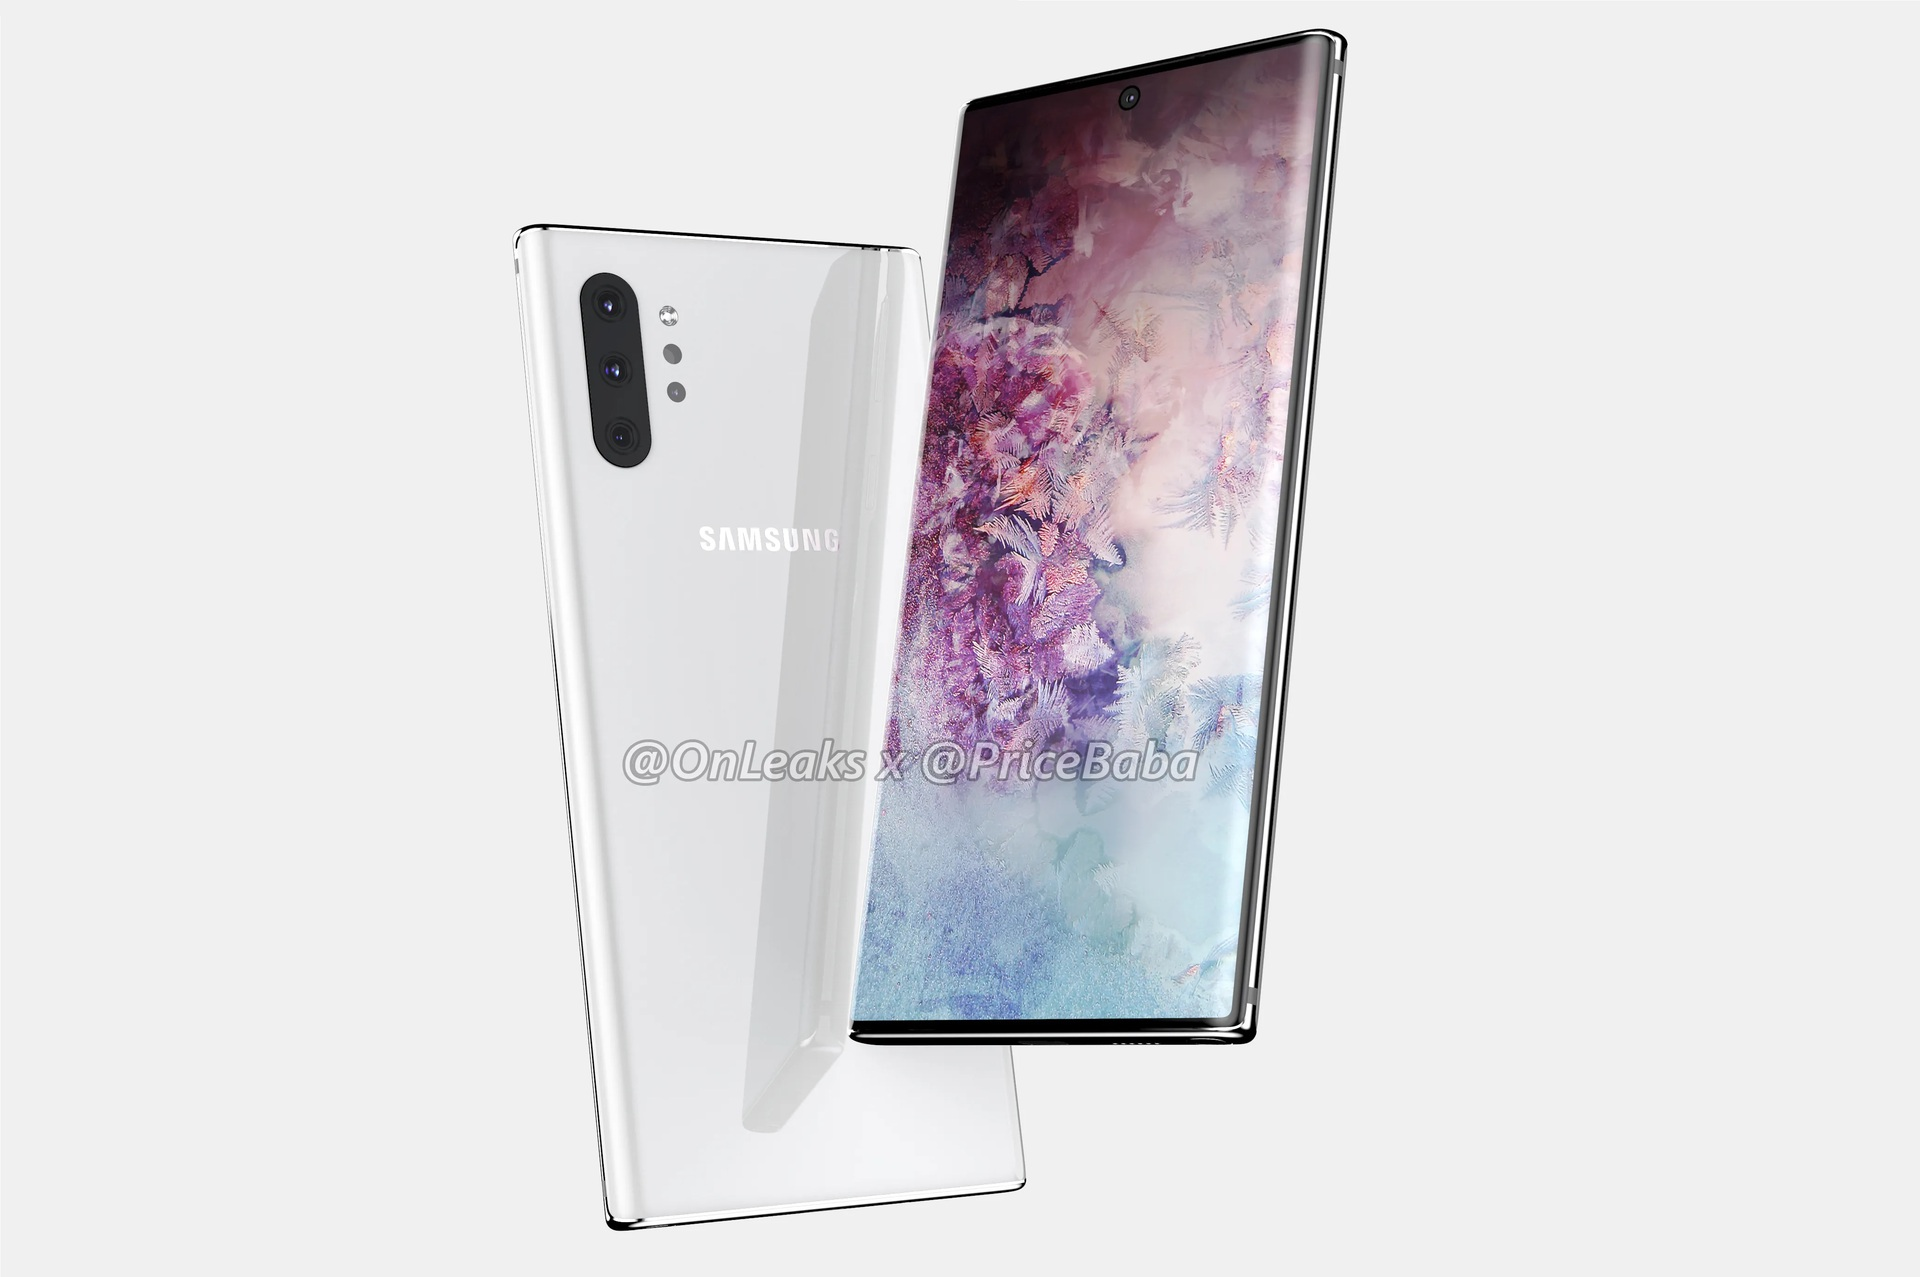 Samsung Galaxy Note 10 Will Have 7nm EUV Processor